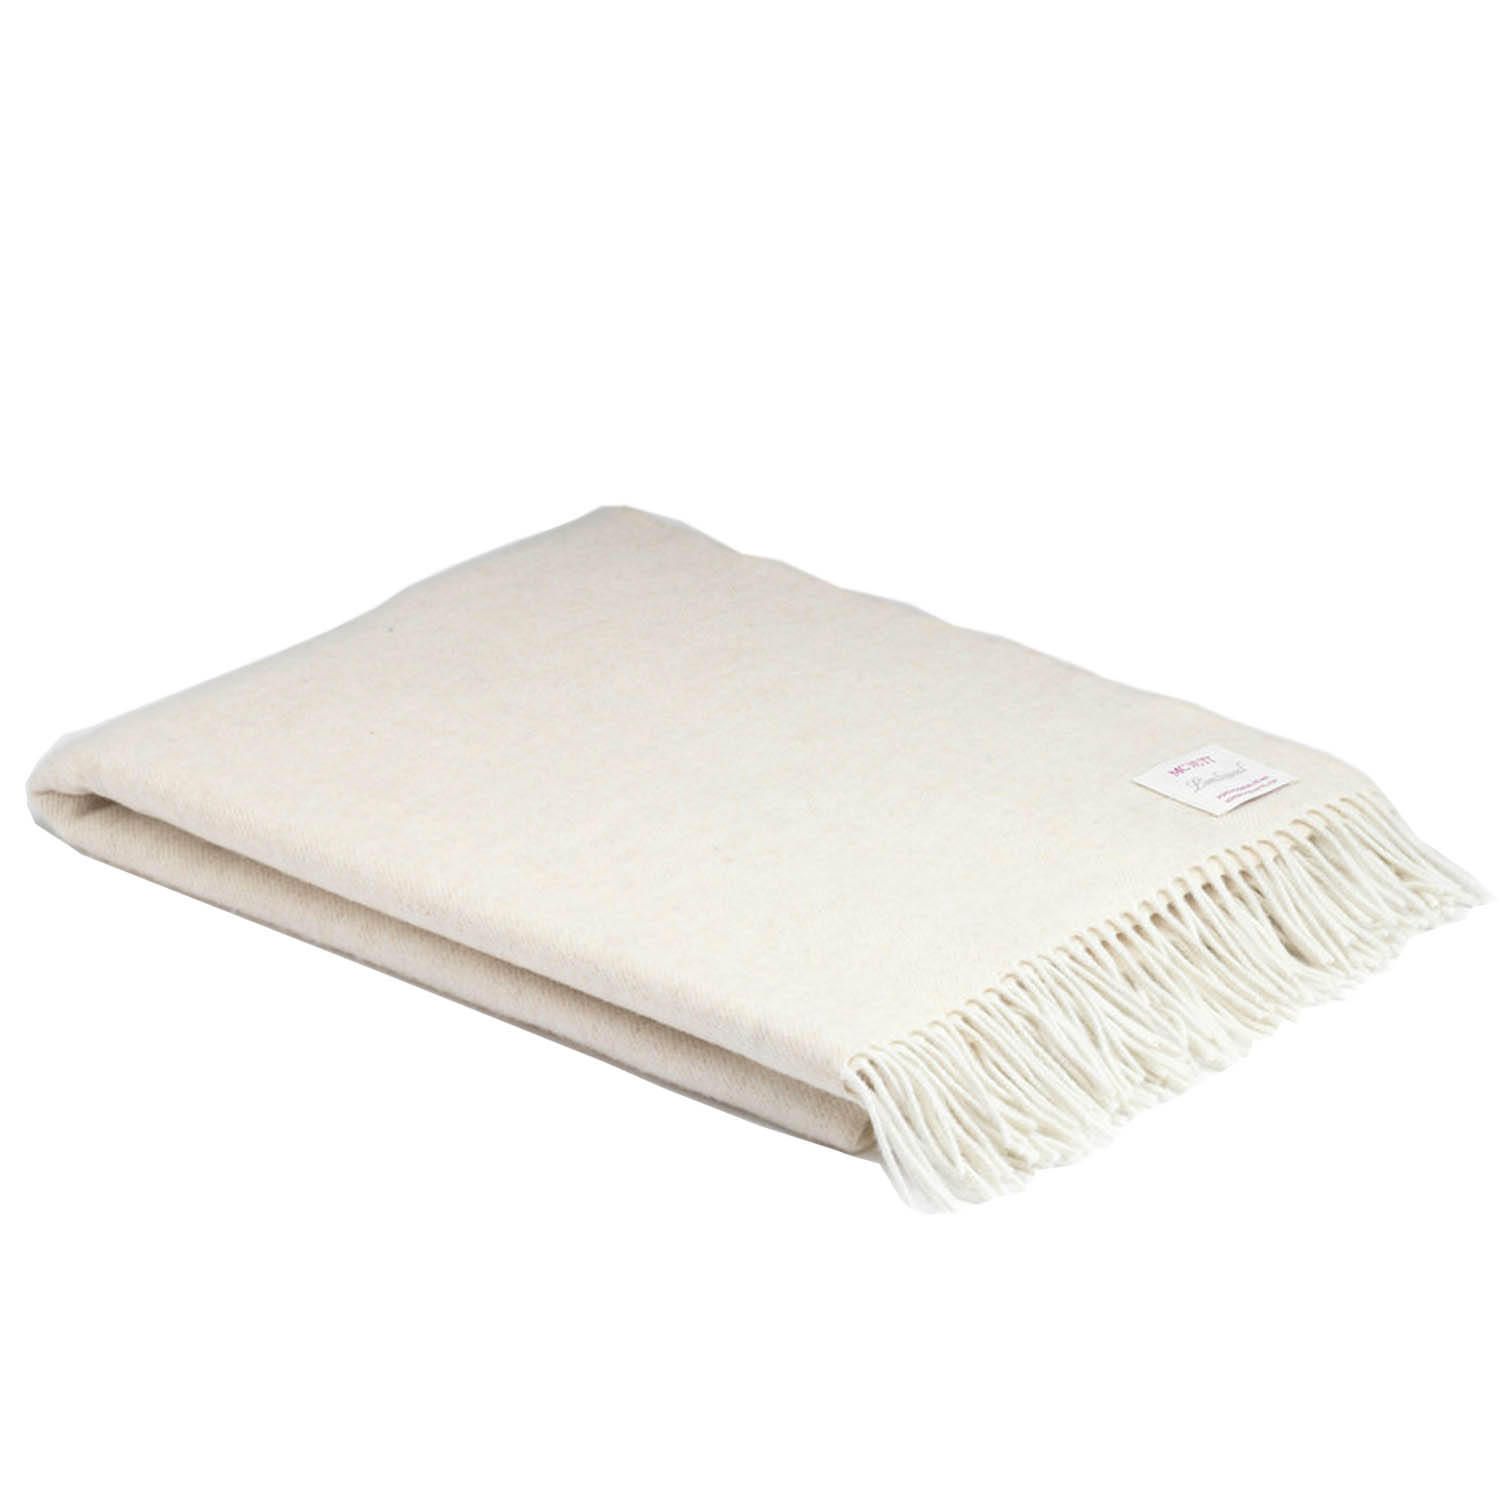 00327 McNutt of Donegal Cream Supersoft lambswool throw